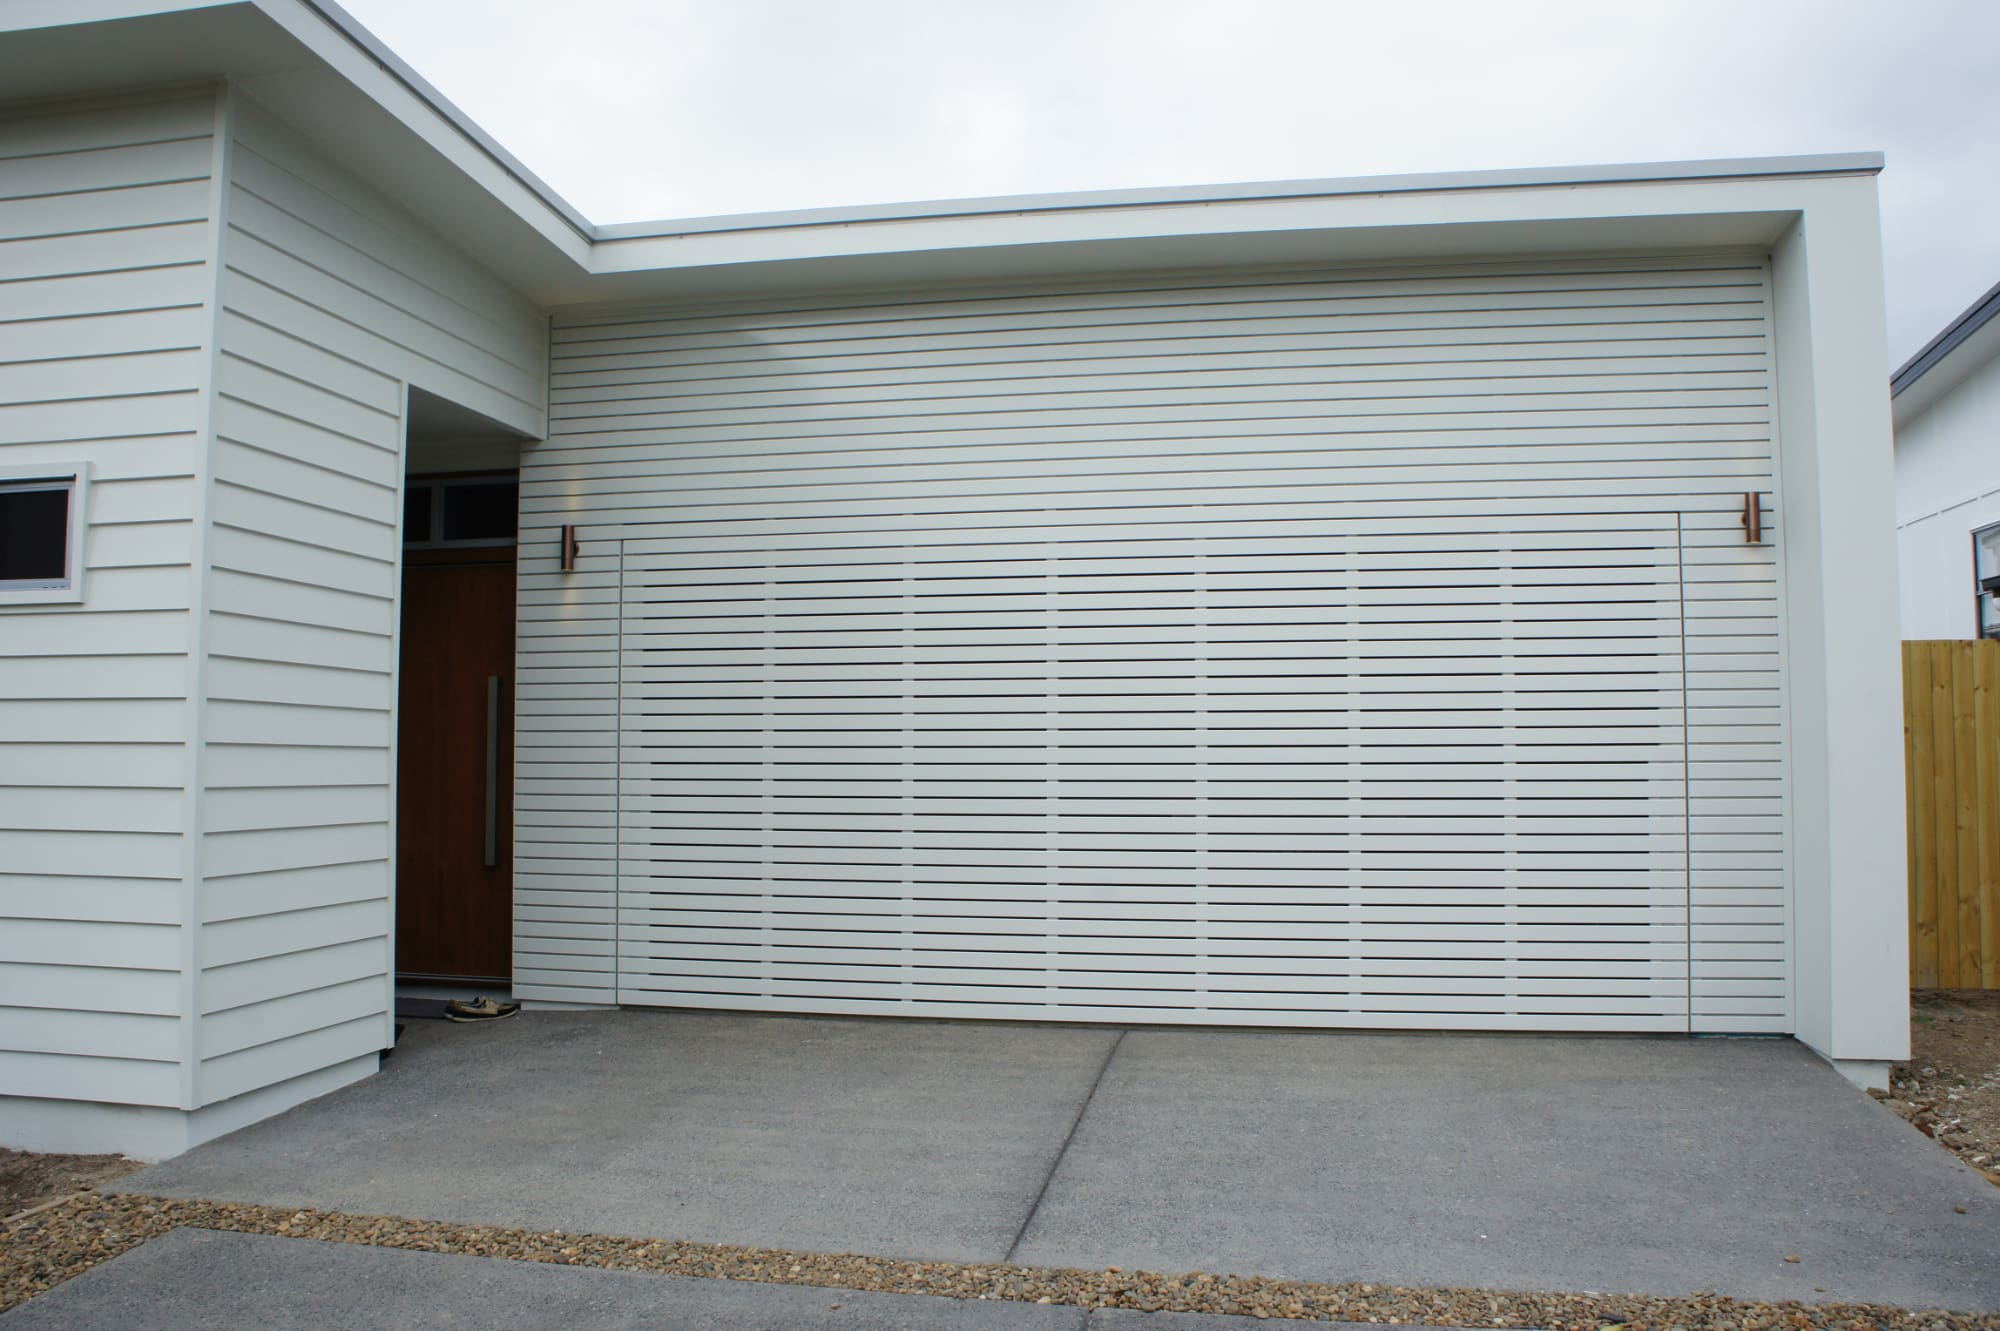 tax door window walk retails garage frame doors ga garages packages for a with o metal midwest horizontal in